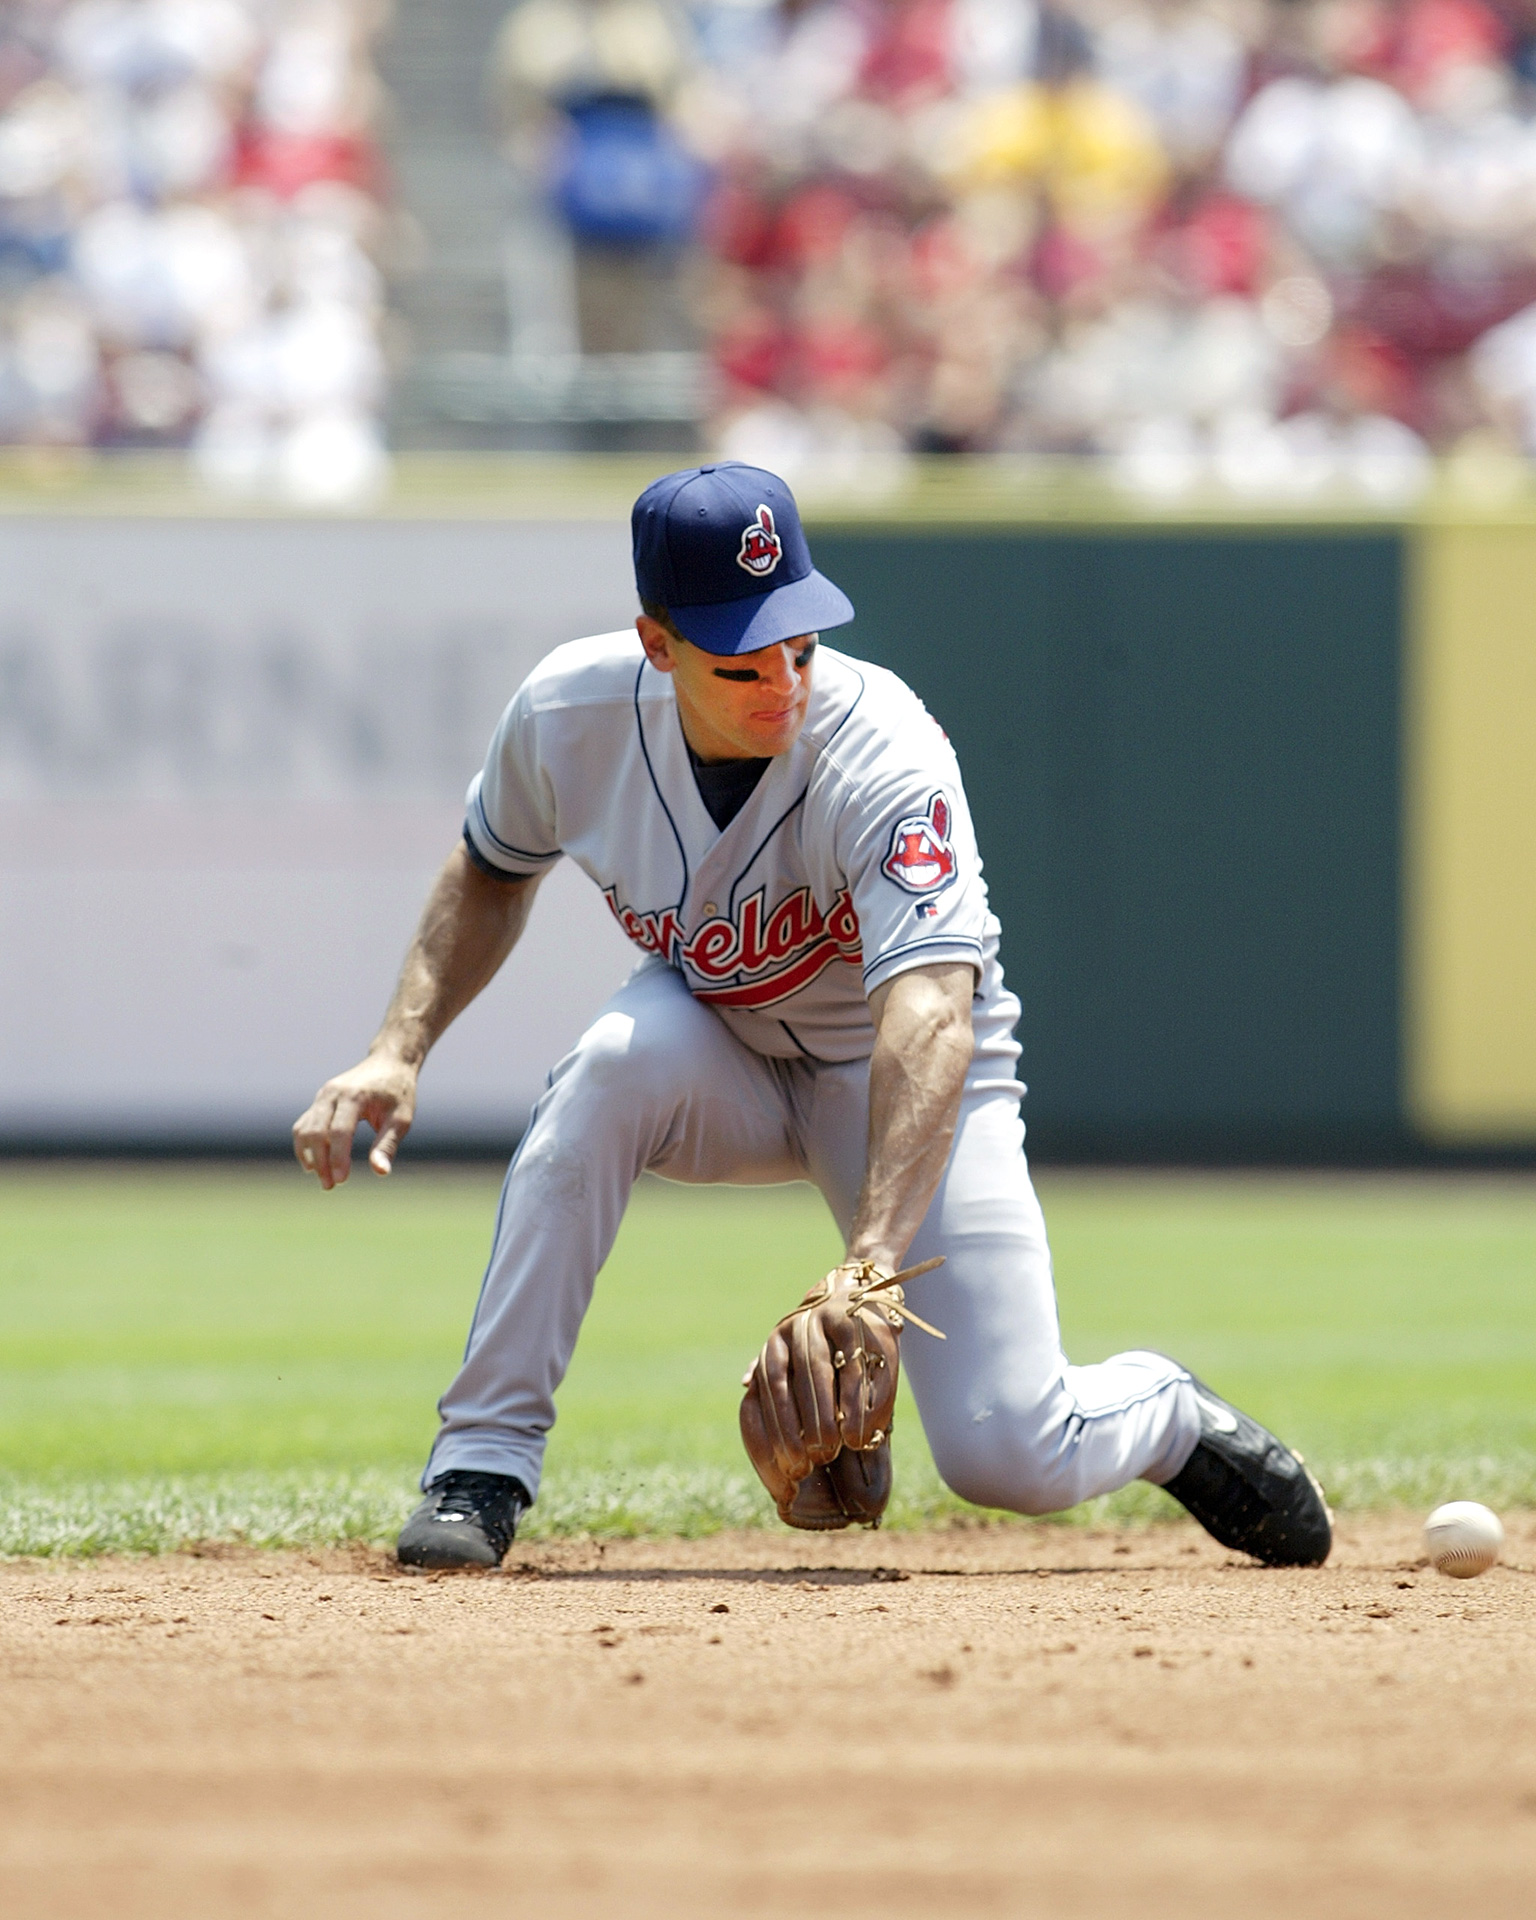 Best Hands: Omar Vizquel